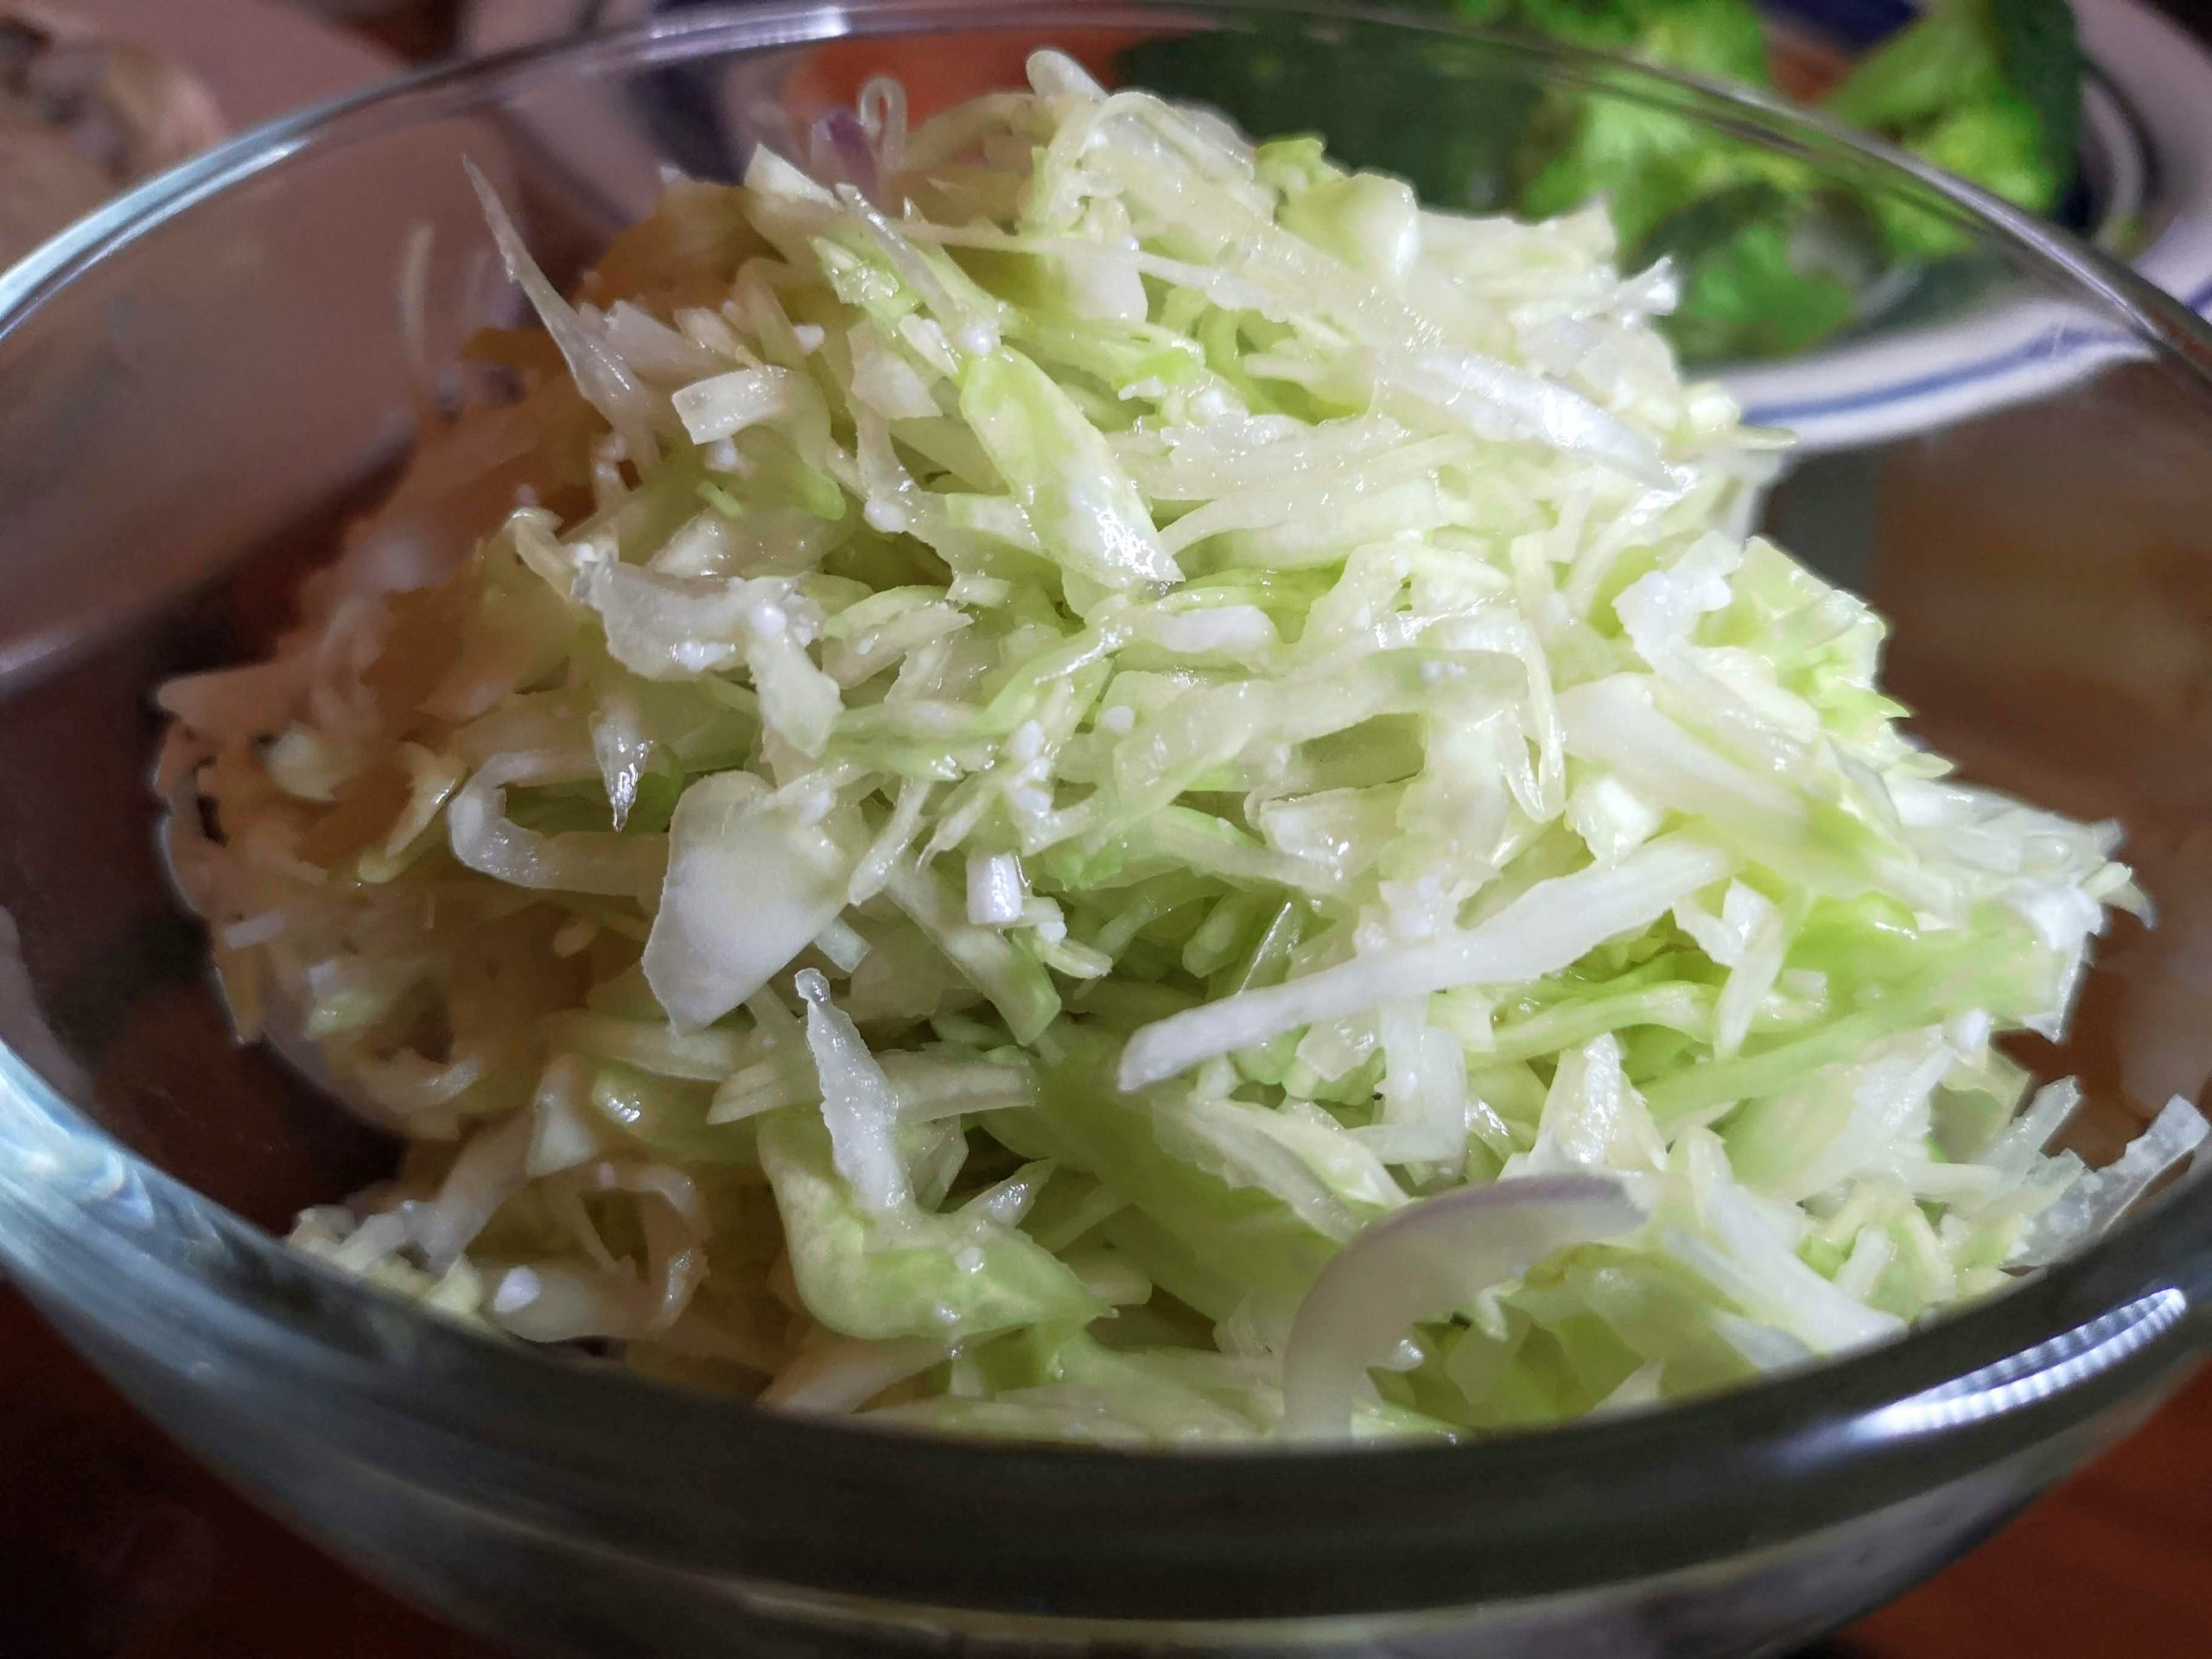 Cabbage Coleslaw Salad with Shio Koji